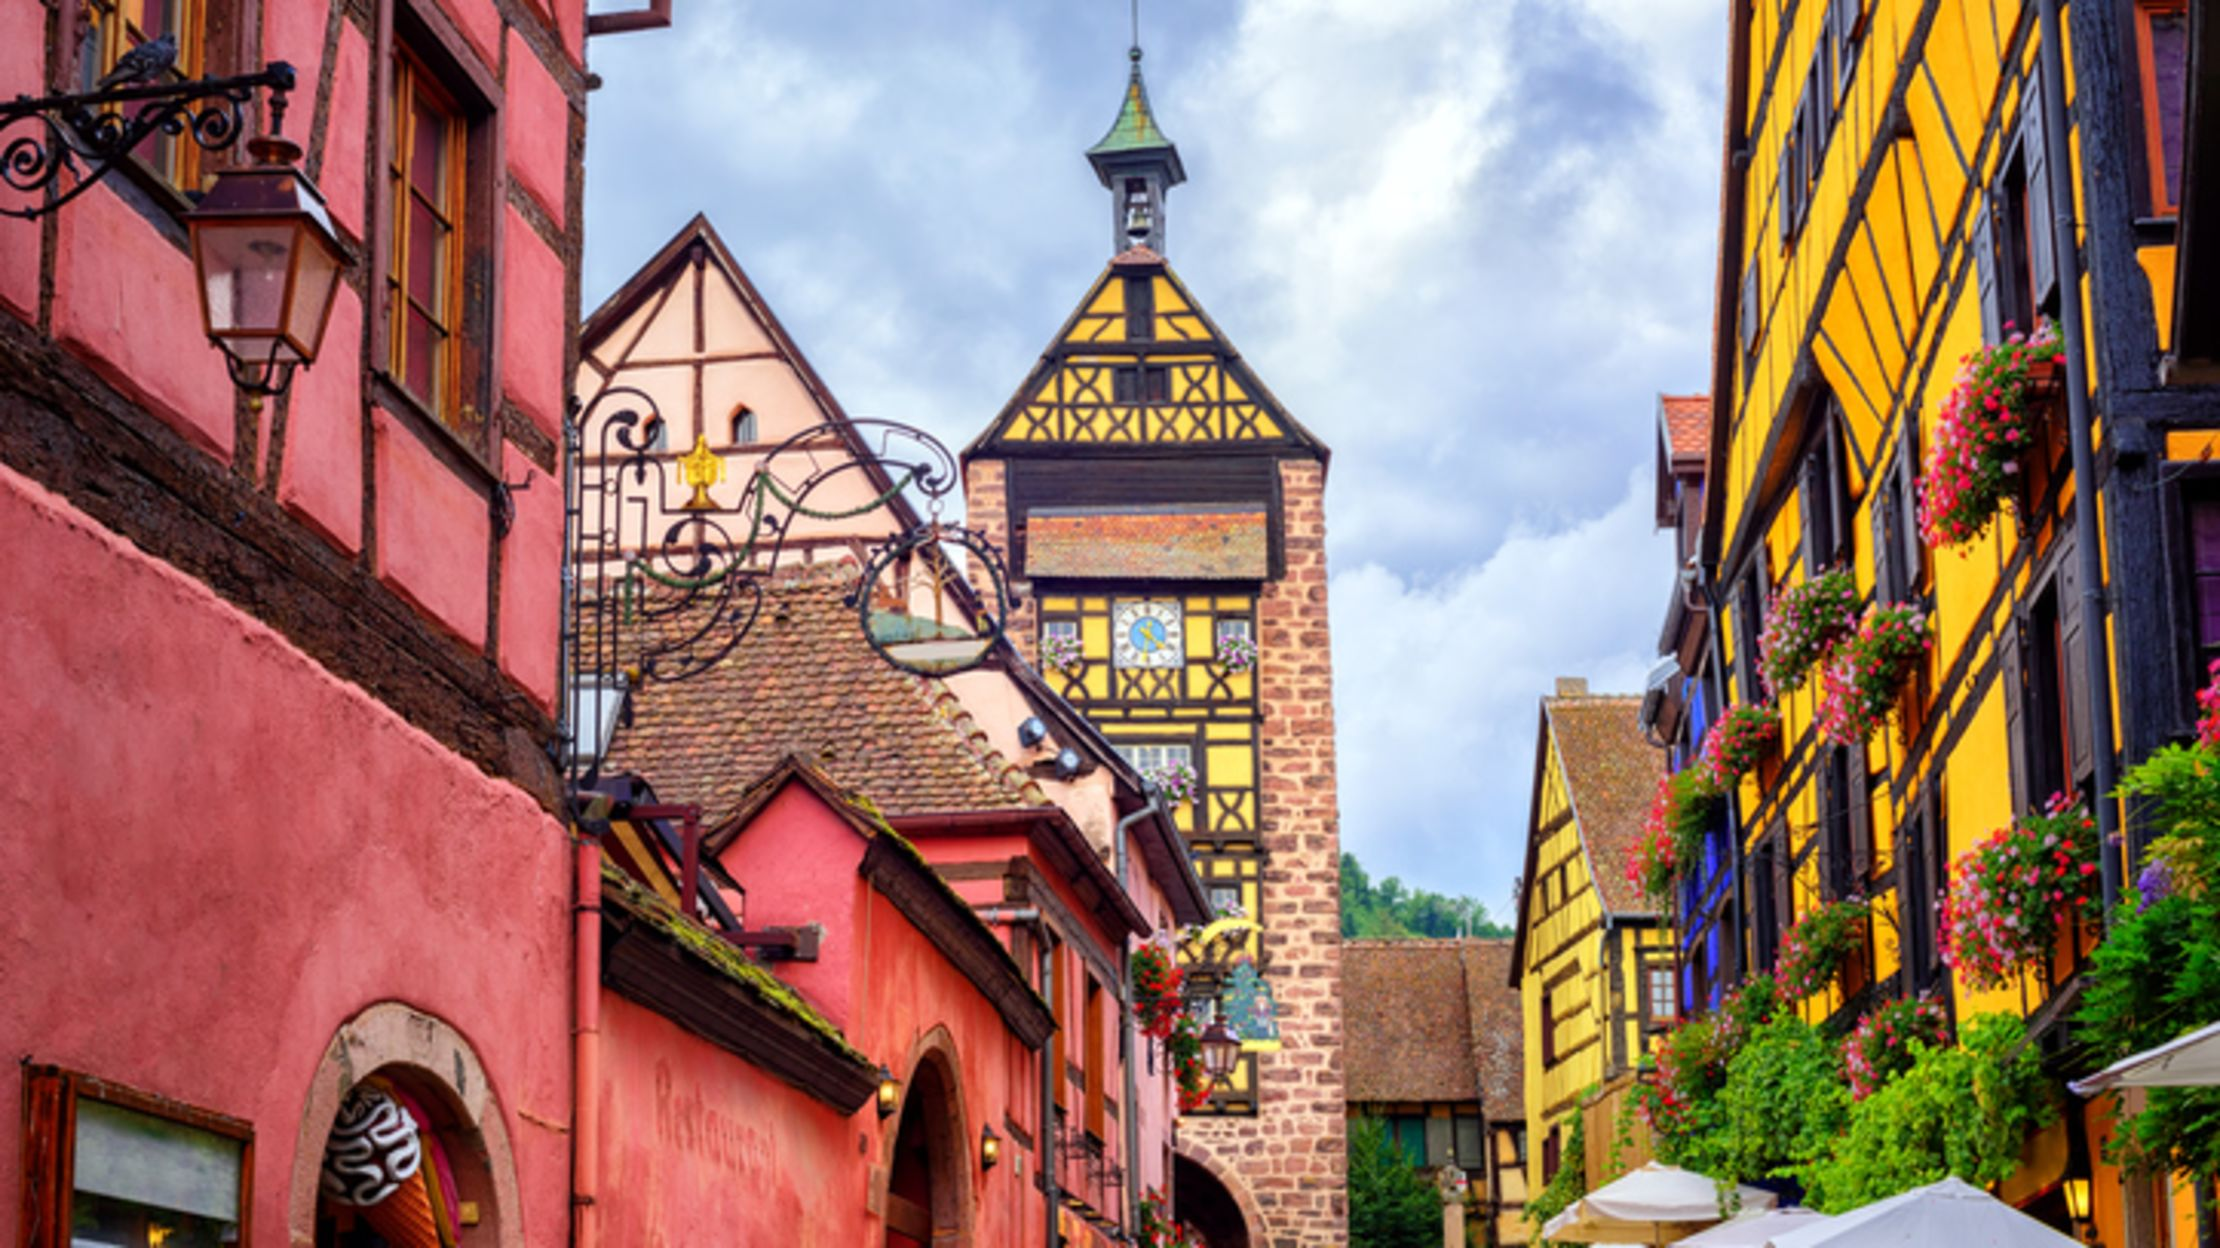 You Can Visit The Two French Villages That Inspired Belle S Hometown In Beauty And The Beast Mental Floss